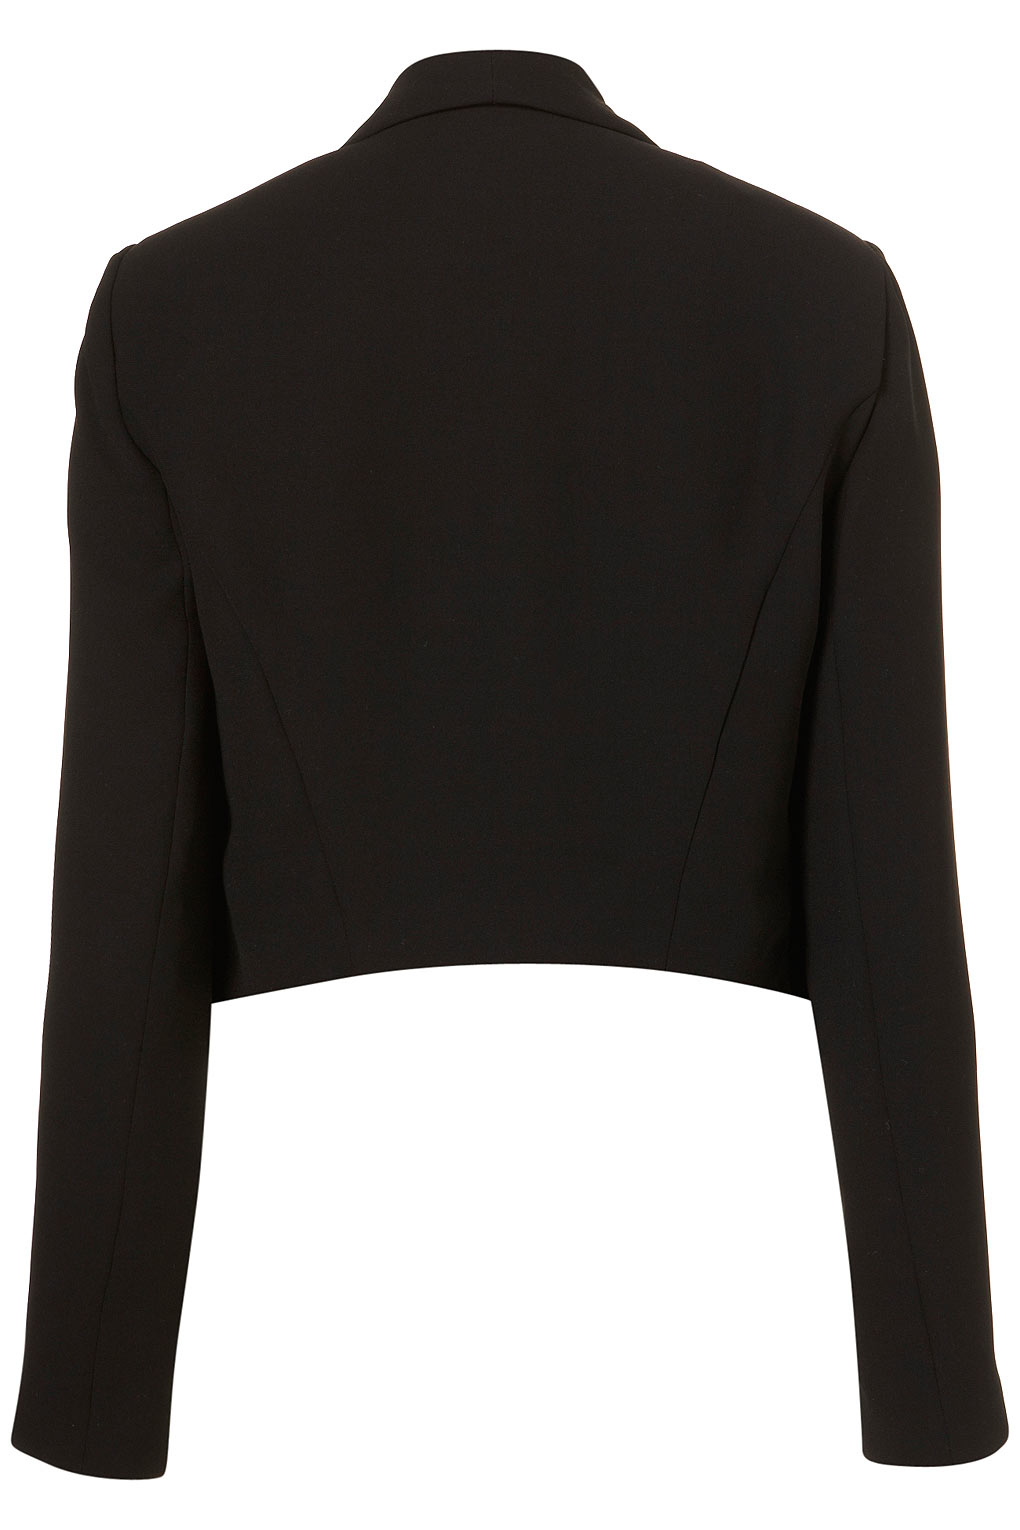 Lyst Topshop Seam Front Waterfall Jacket In Black